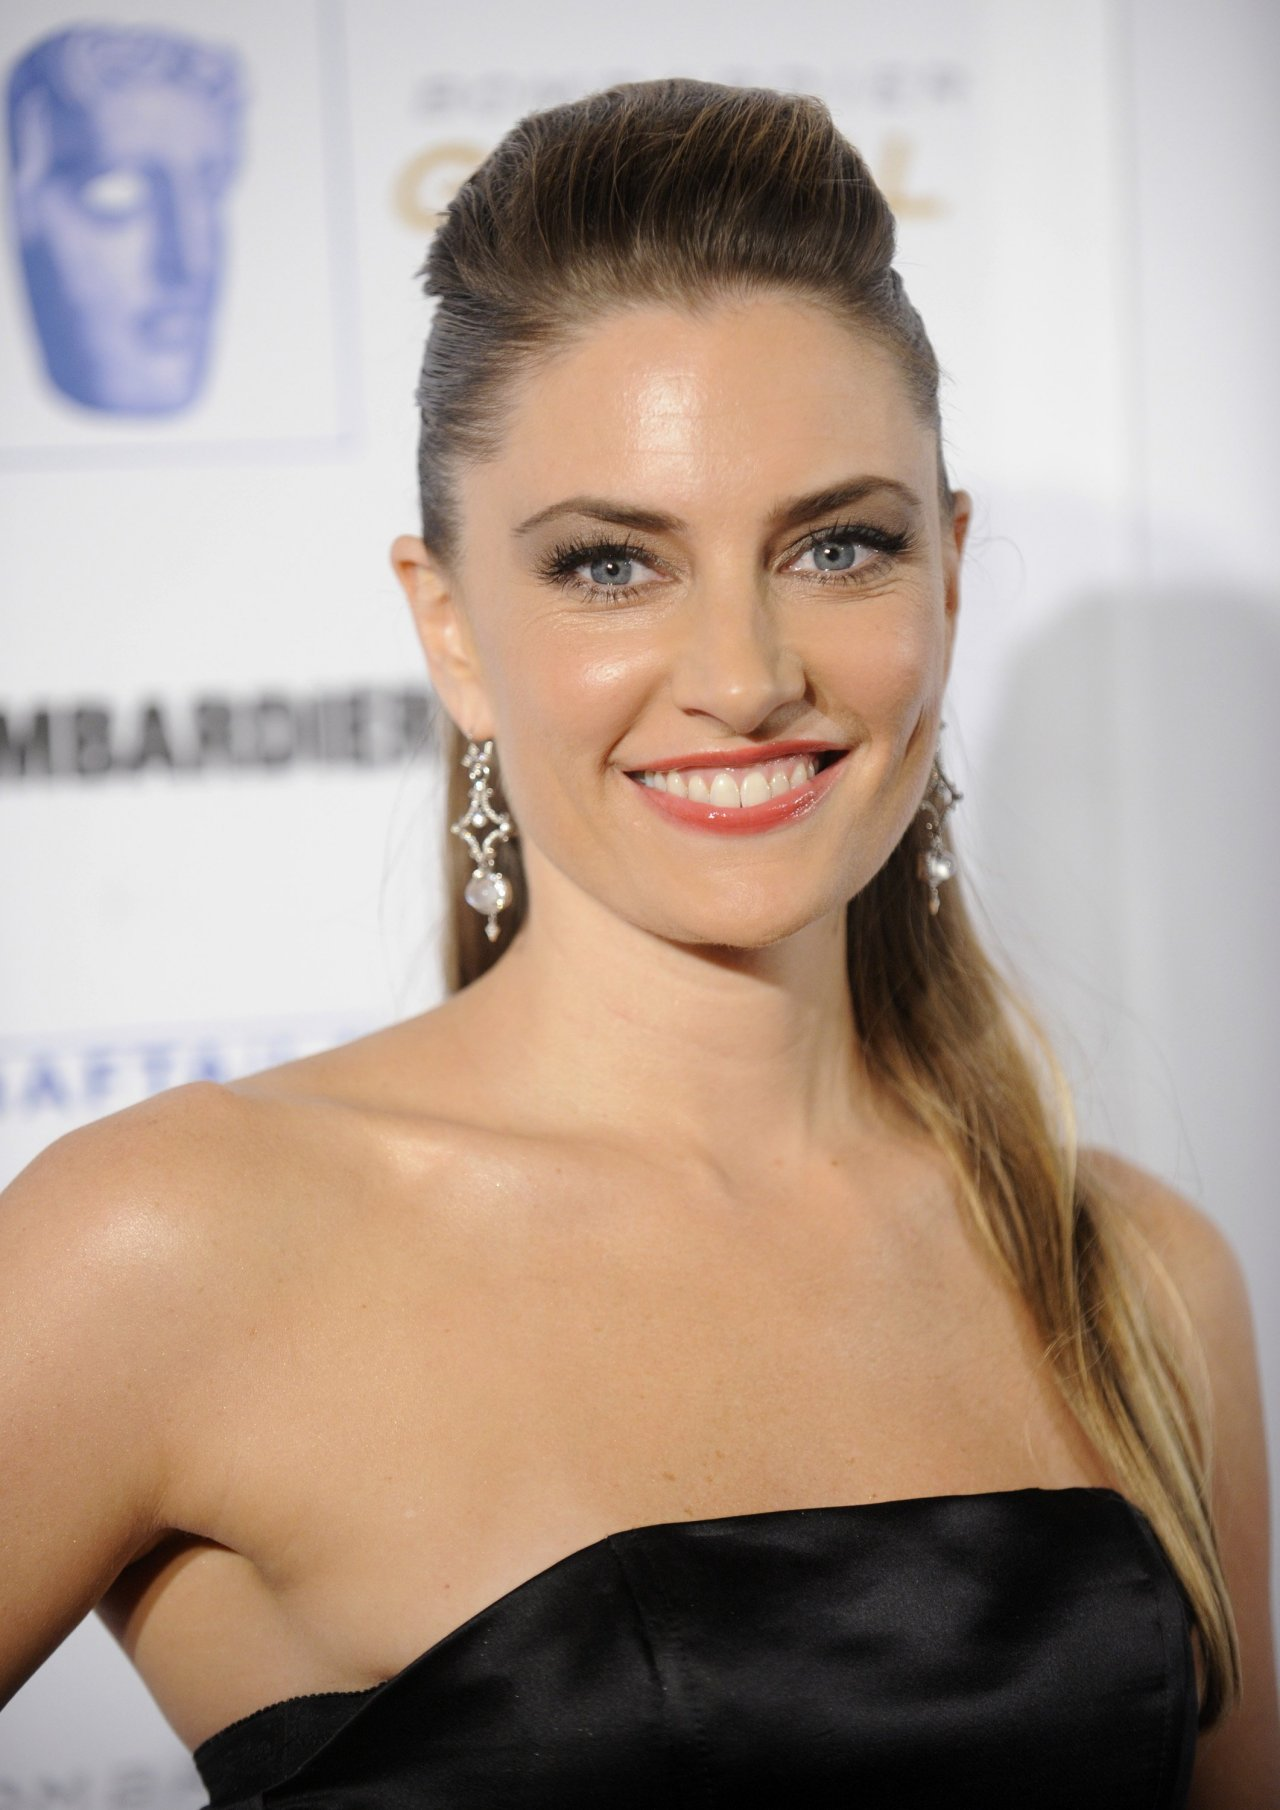 M dchen amick hot pictures unusual attractions for Kinderzimmerlampe madchen